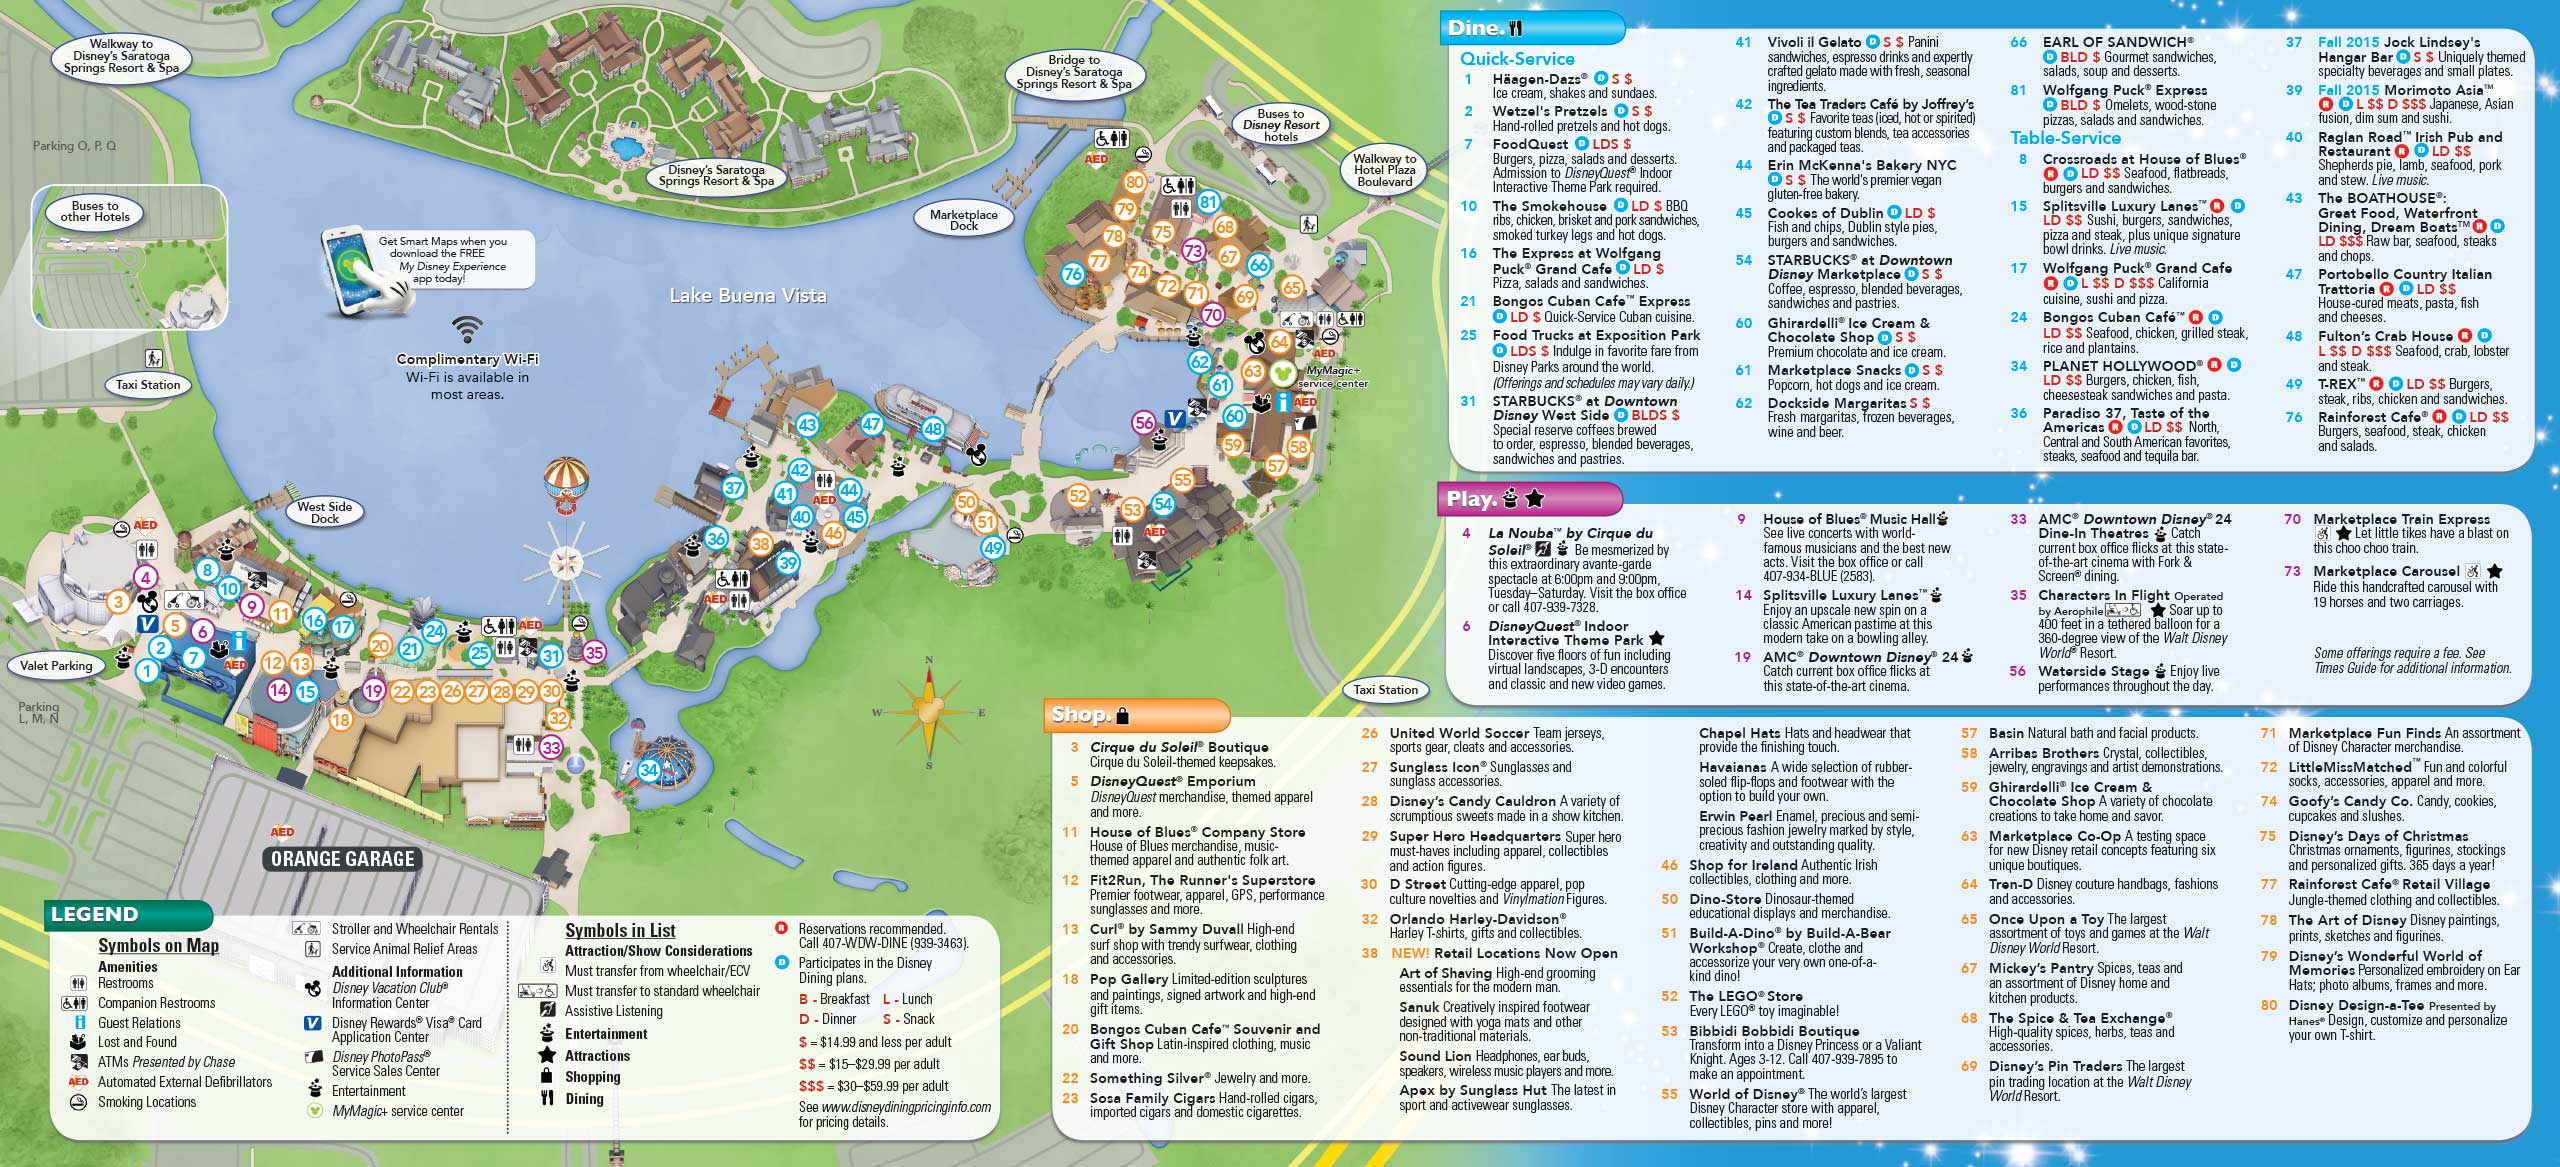 Downtown Disney Florida Map.Photos New Downtown Disney Guide Map Includes Disney Springs Name